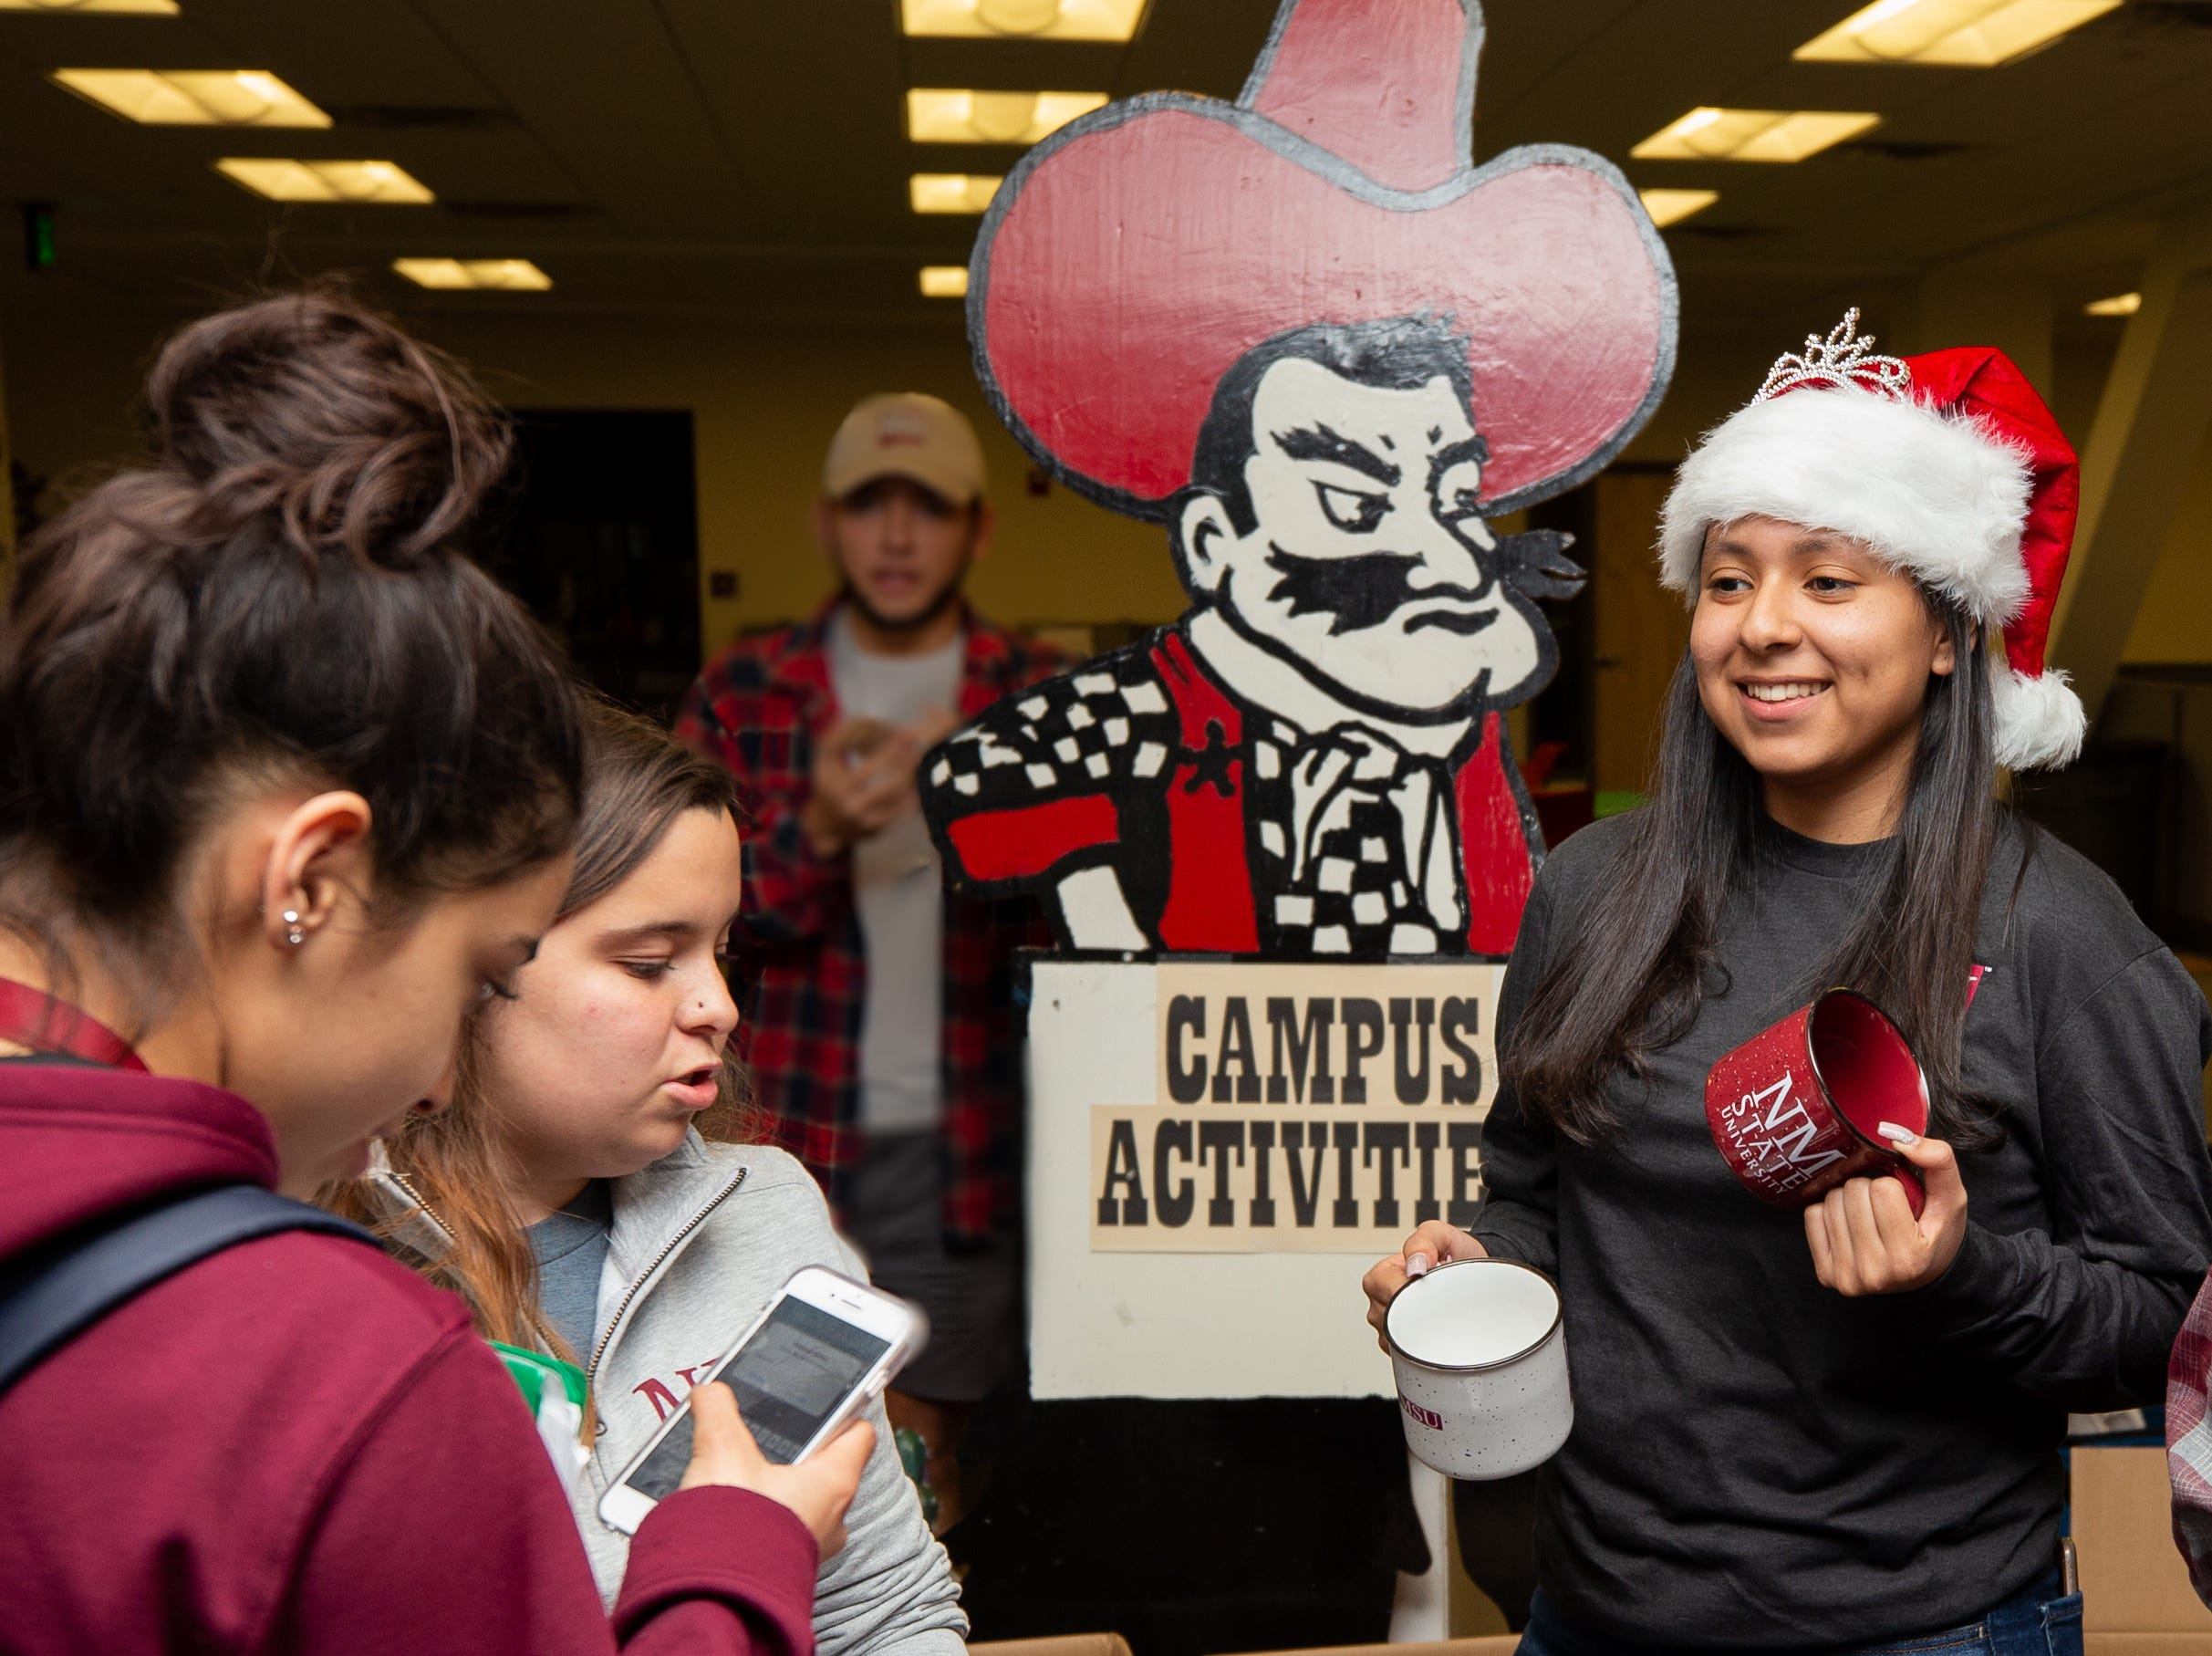 Misa Montalvo with NMSU Campus Activities hands out free T-shirts and mugs to NMSU students during the Noche de Luminarias event Sunday, Dec. 2, 2018, at New Mexico State University.